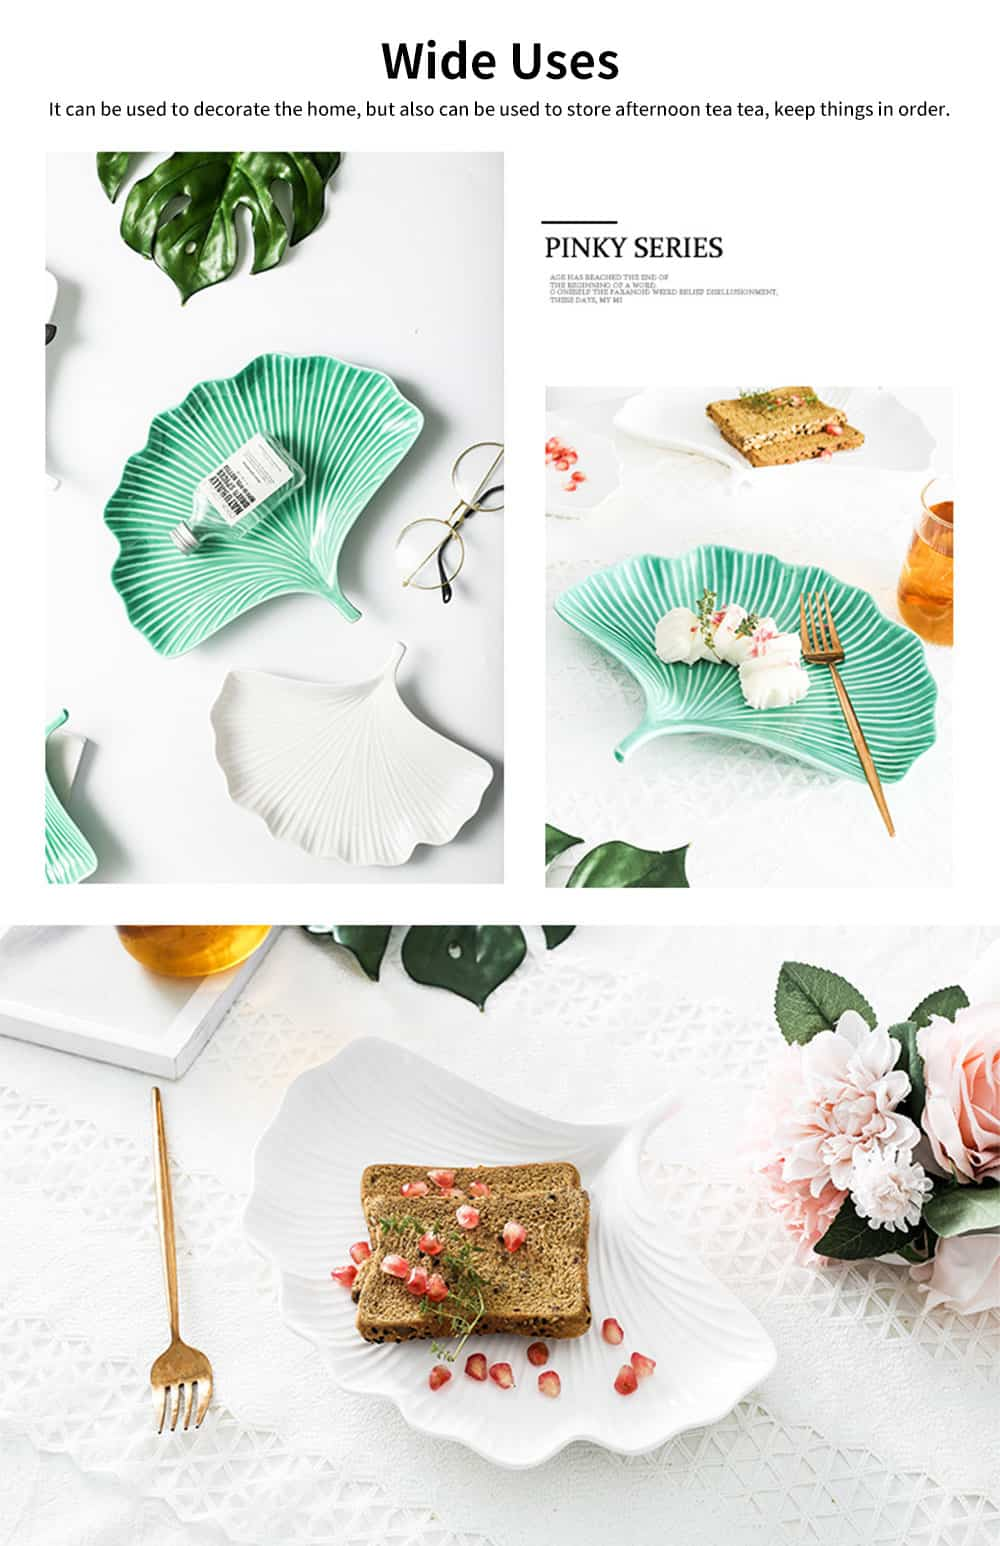 Creative Dessert Jewelry Storage Plate with Ginkgo Modeling & Streamline Design for Daily Decoration 4